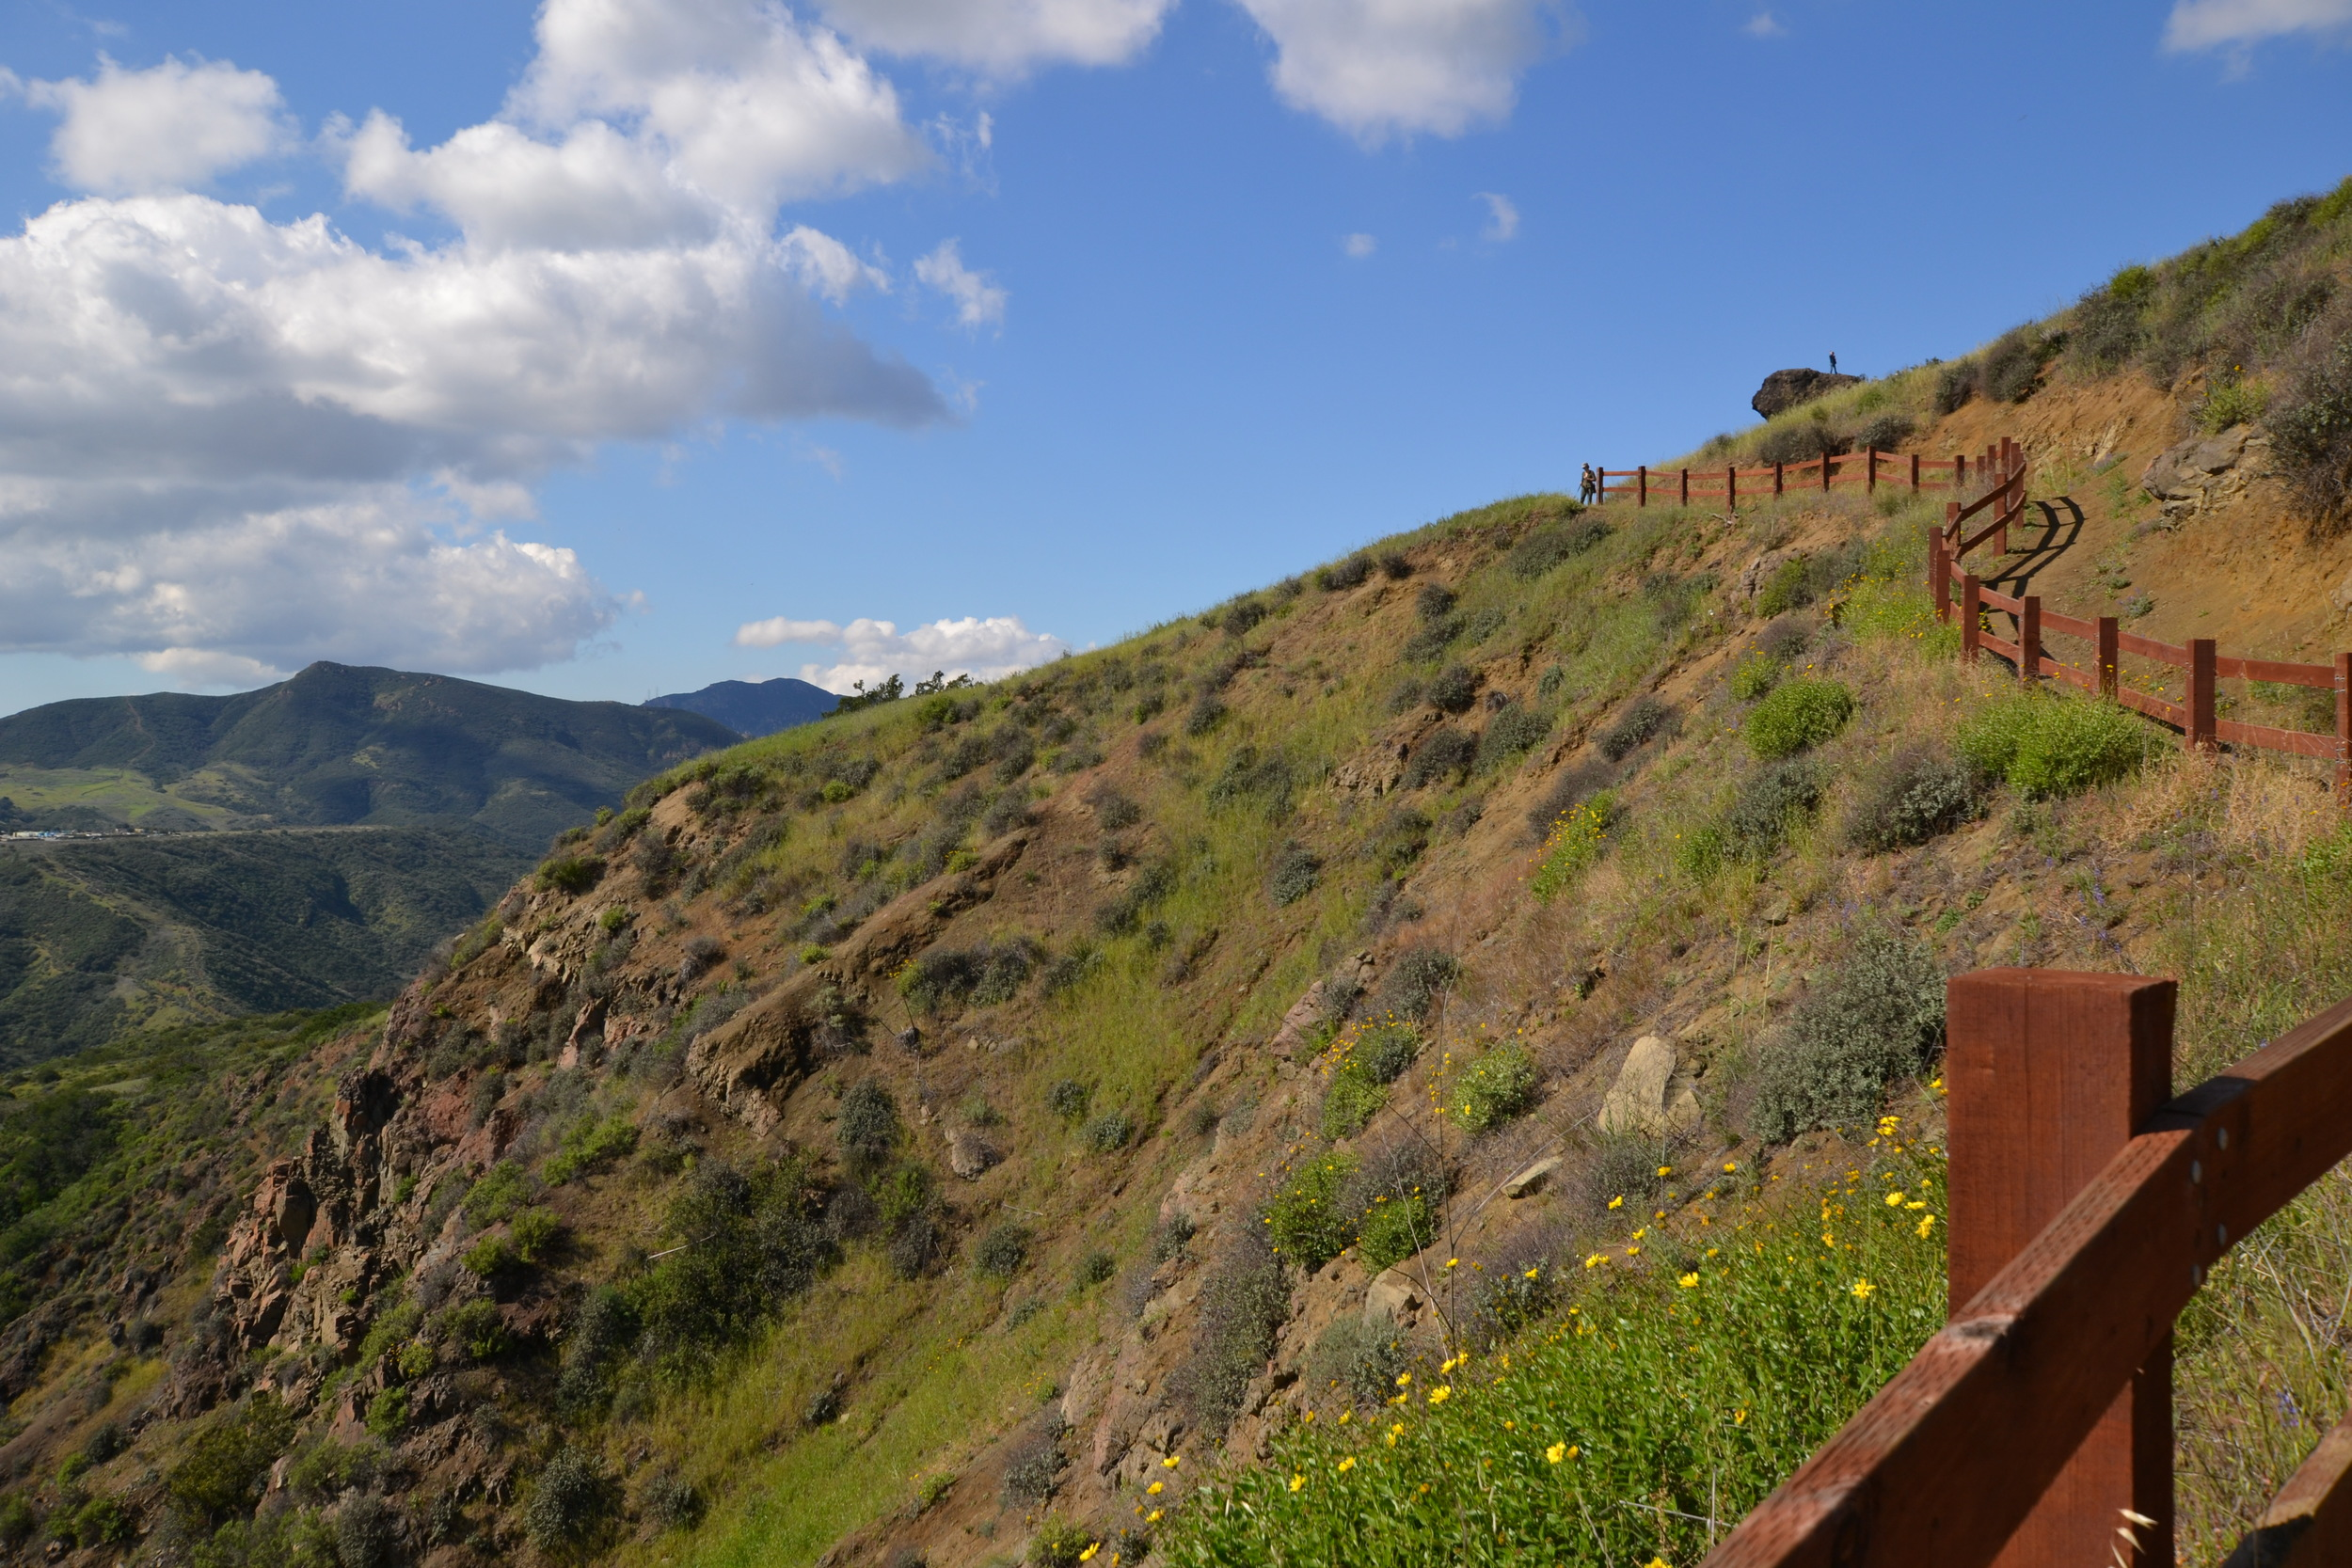 The Rim Trail at Wildwood Park, Thousand Oaks